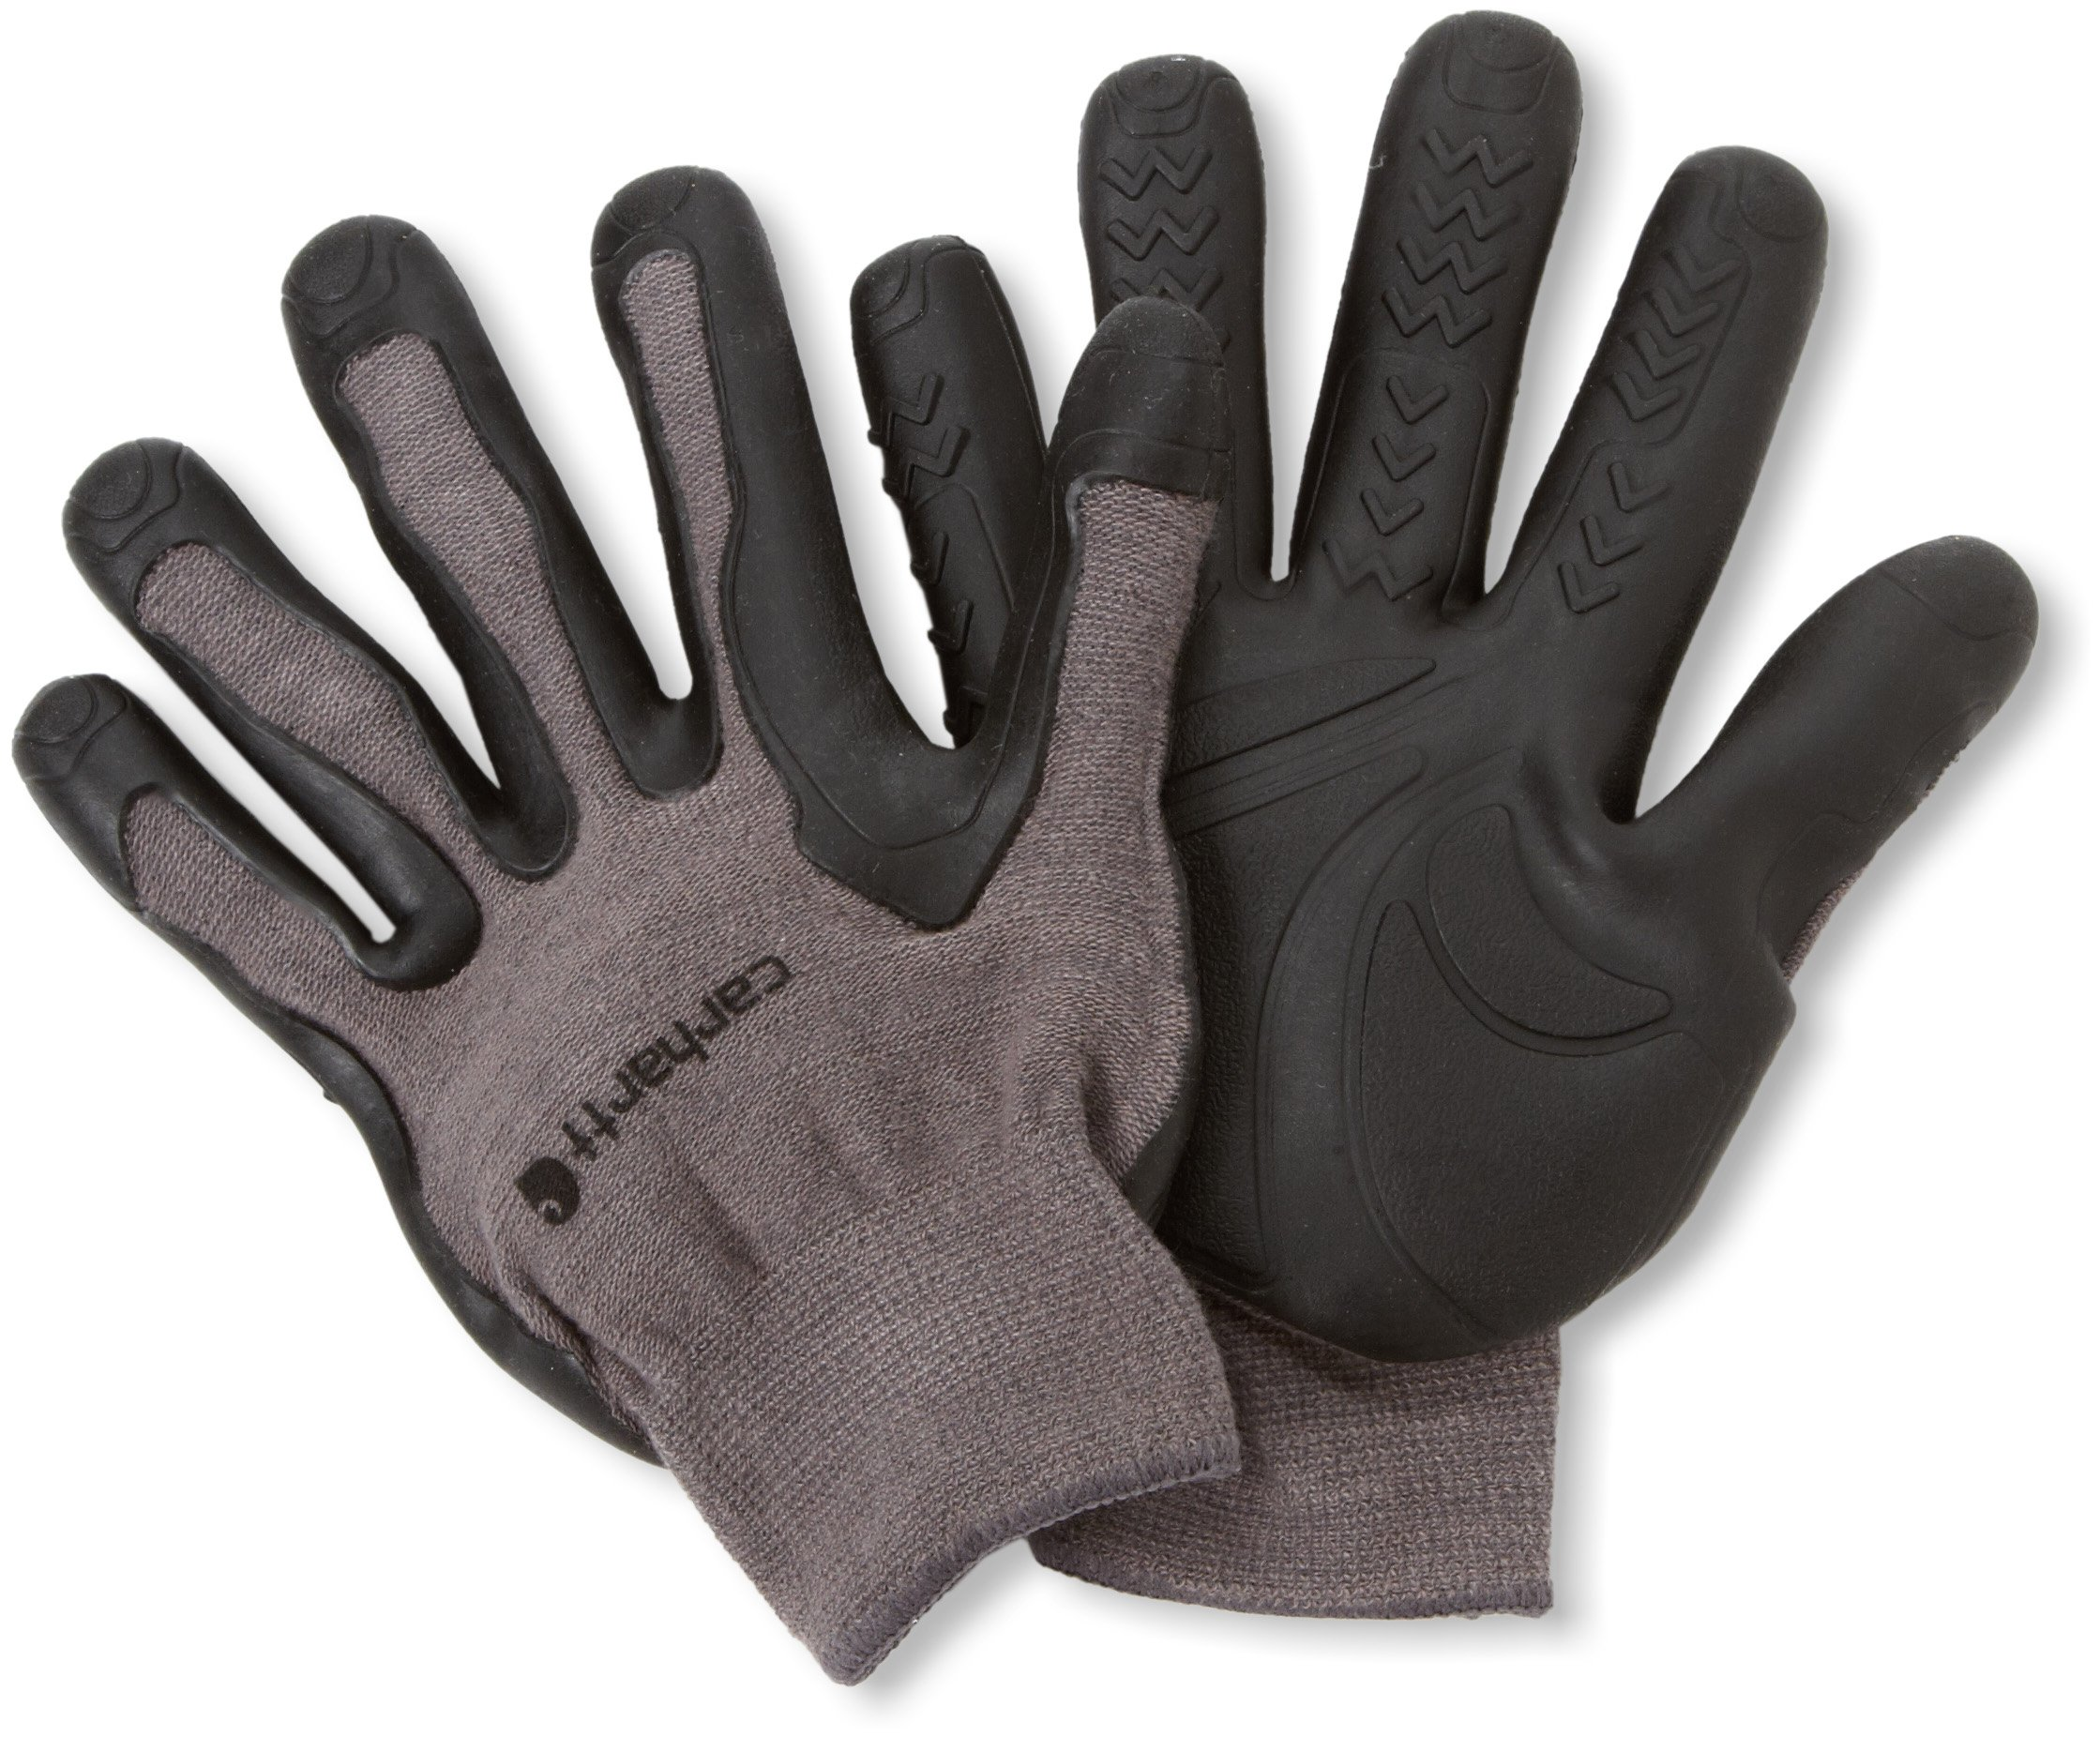 Carhartt Men's Ergo Pro Palm Glove, Grey, XX-Large